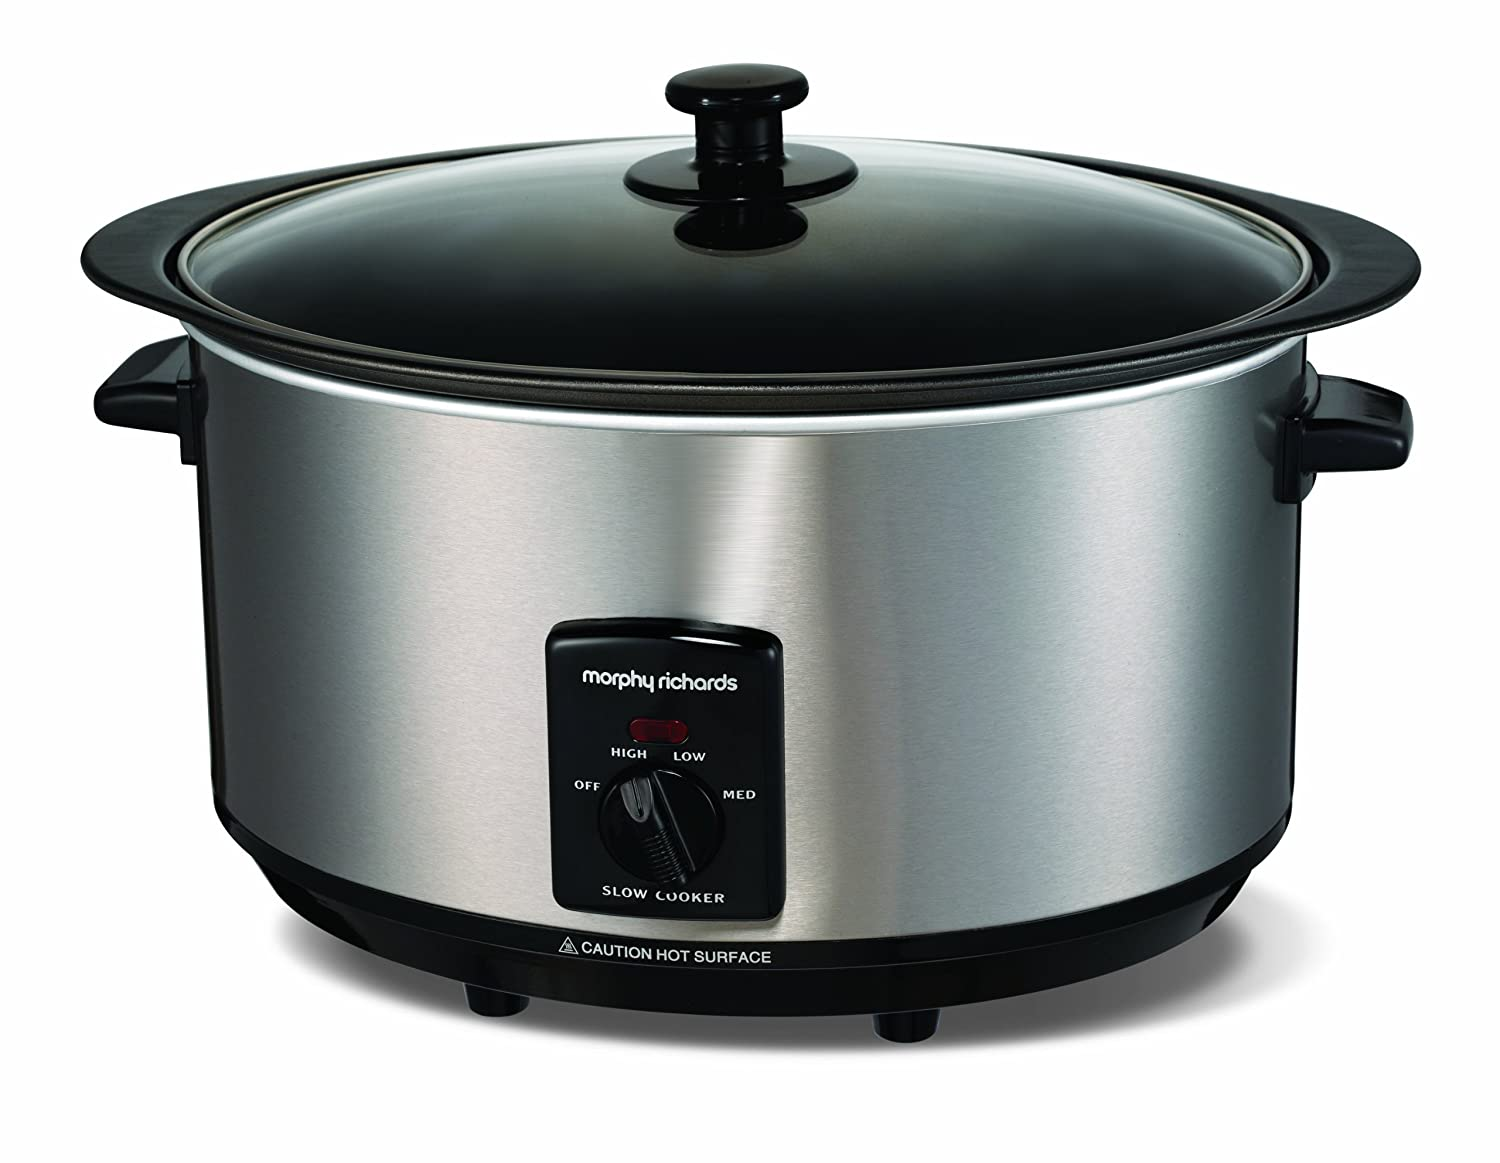 5l accents range only electricals co uk small kitchen appliances - Morphy Richards Accents 48705 Sear And Stew Slow Cooker 6 5 L Brushed Stainless Steel Amazon Co Uk Kitchen Home